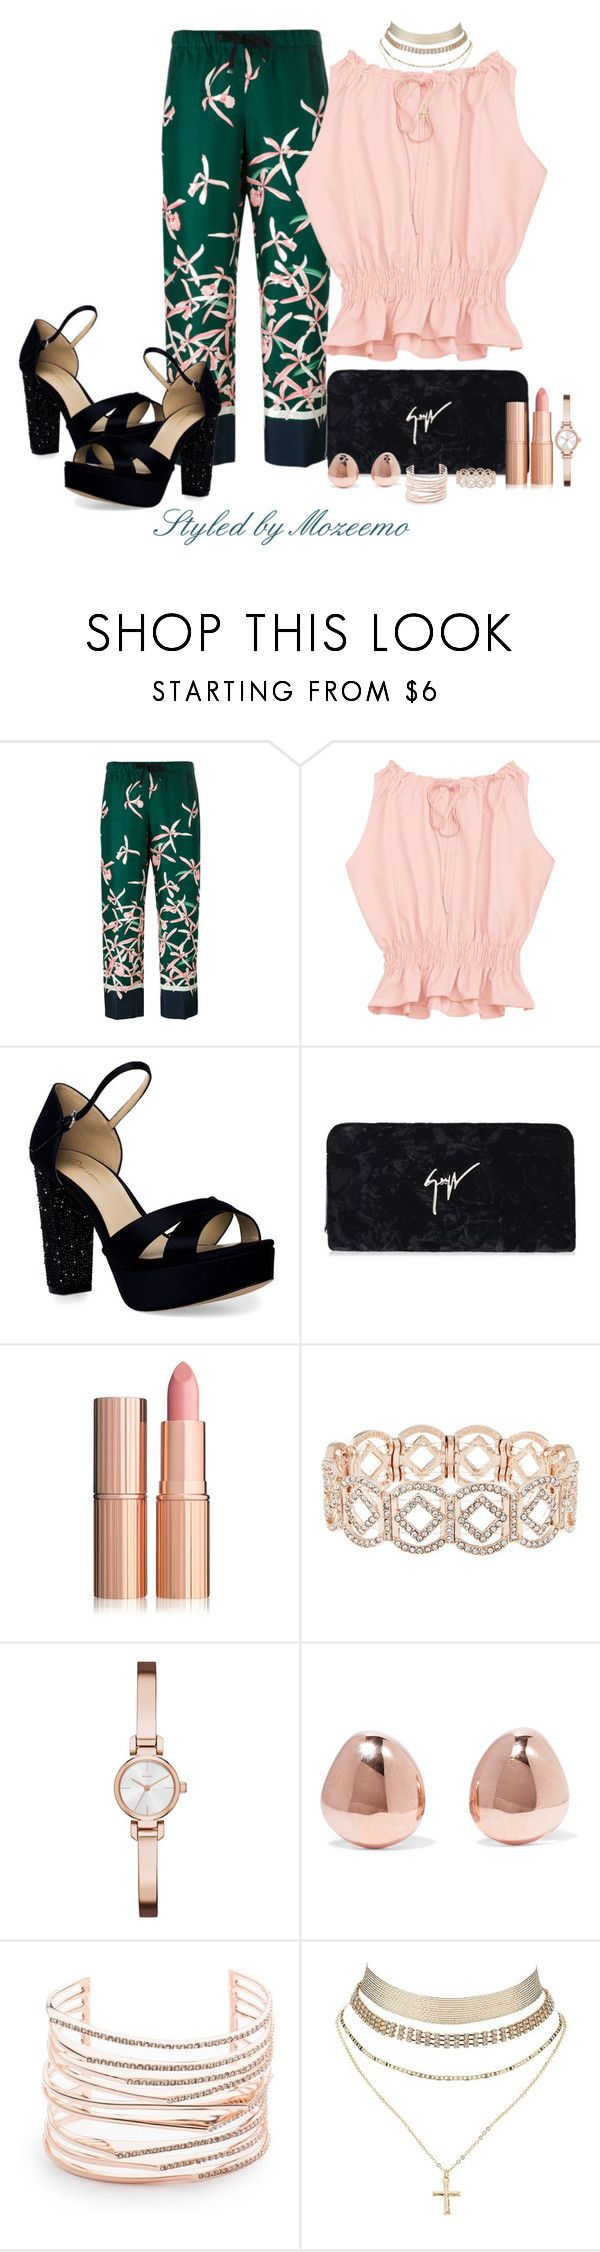 """""""Floral Print Trousers"""" by mozeemo ❤ liked on Polyvore featuring Moncler, JL by Judith Leiber, Giuseppe Zanotti, Accessorize, DKNY, Monica Vinader, Alexis Bittar and Charlotte Russe"""